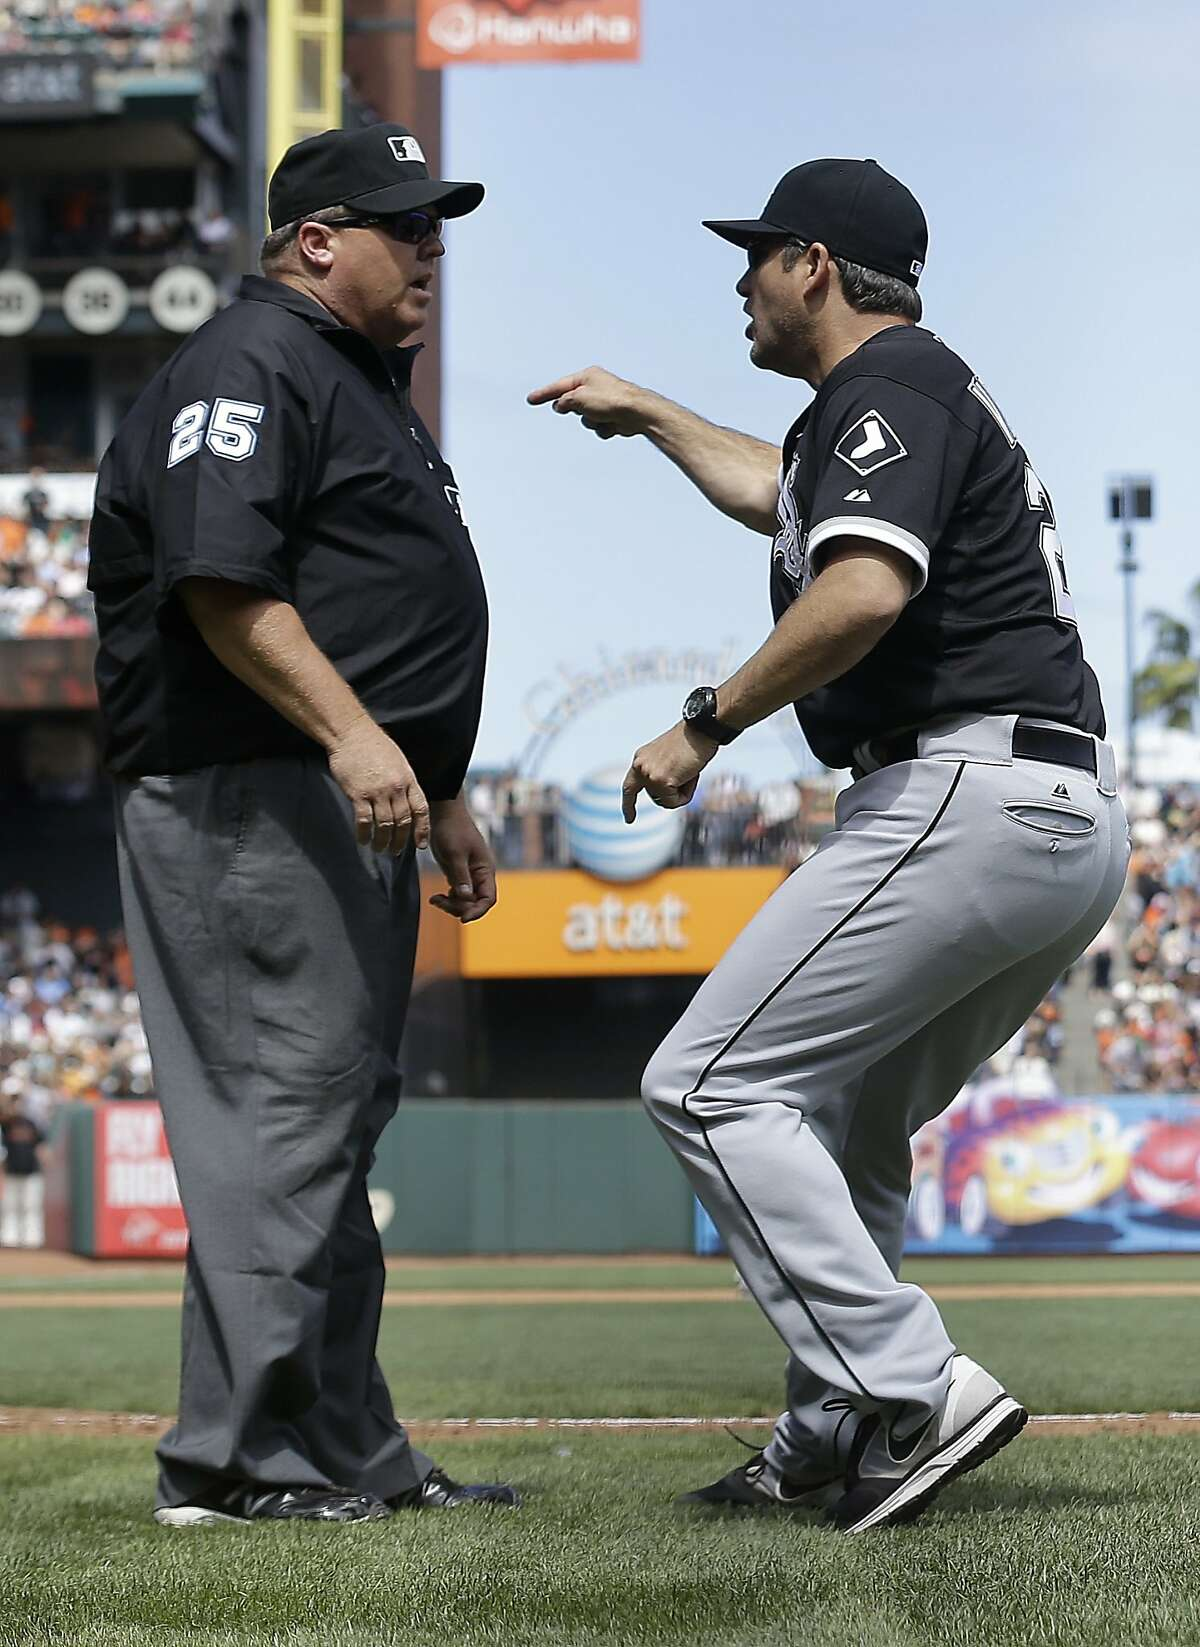 Chicago White Sox manager Robin Ventura, right, argues with umpire Fieldin Culbreth before being ejected for arguing a call on San Francisco Giants' Gregor Blanco, who was originally ruled out at home but then ruled safe after review, during the seventh inning of a baseball game in San Francisco, Calif., Wednesday, Aug. 13, 2014. (AP Photo/Jeff Chiu)